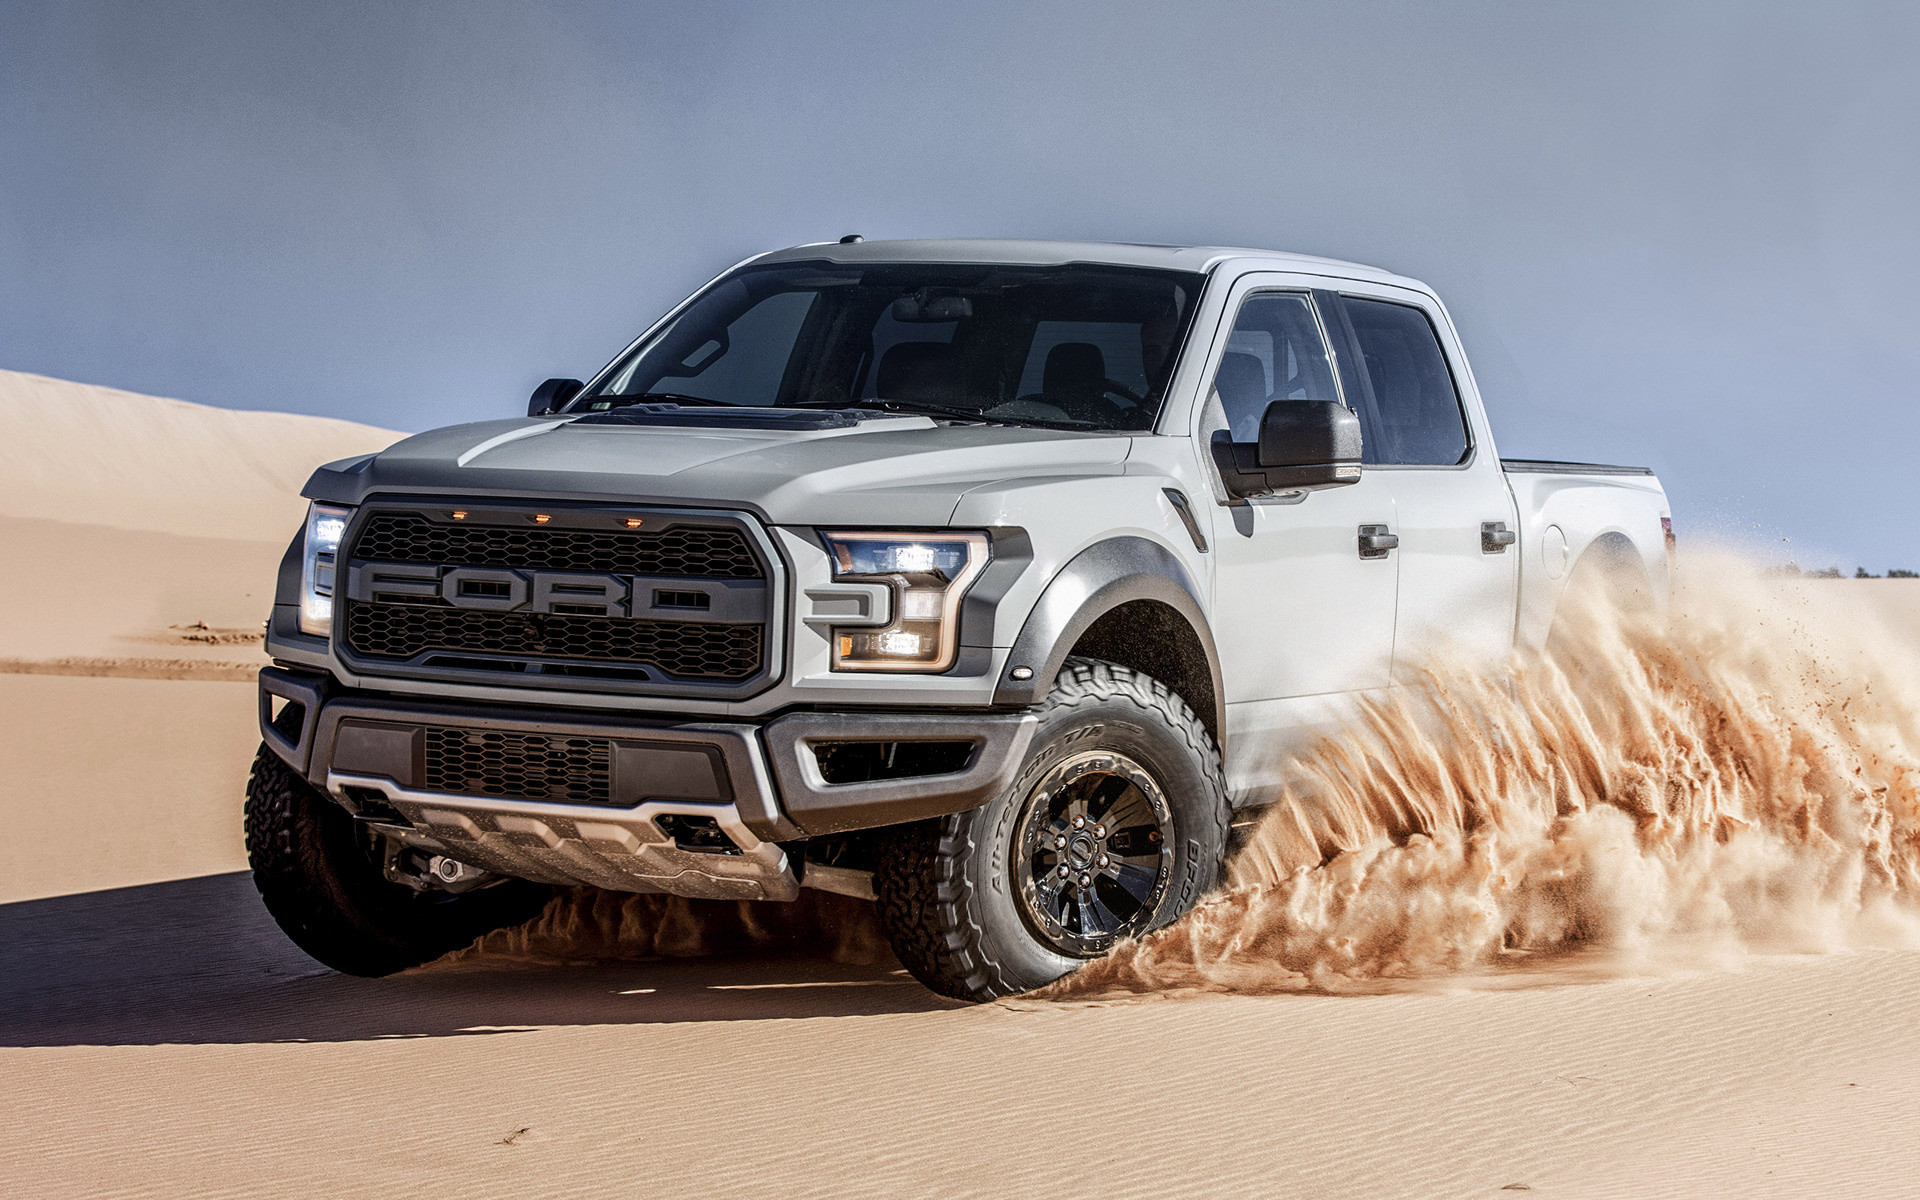 2018 Ford Raptor Wallpaper 70 Images